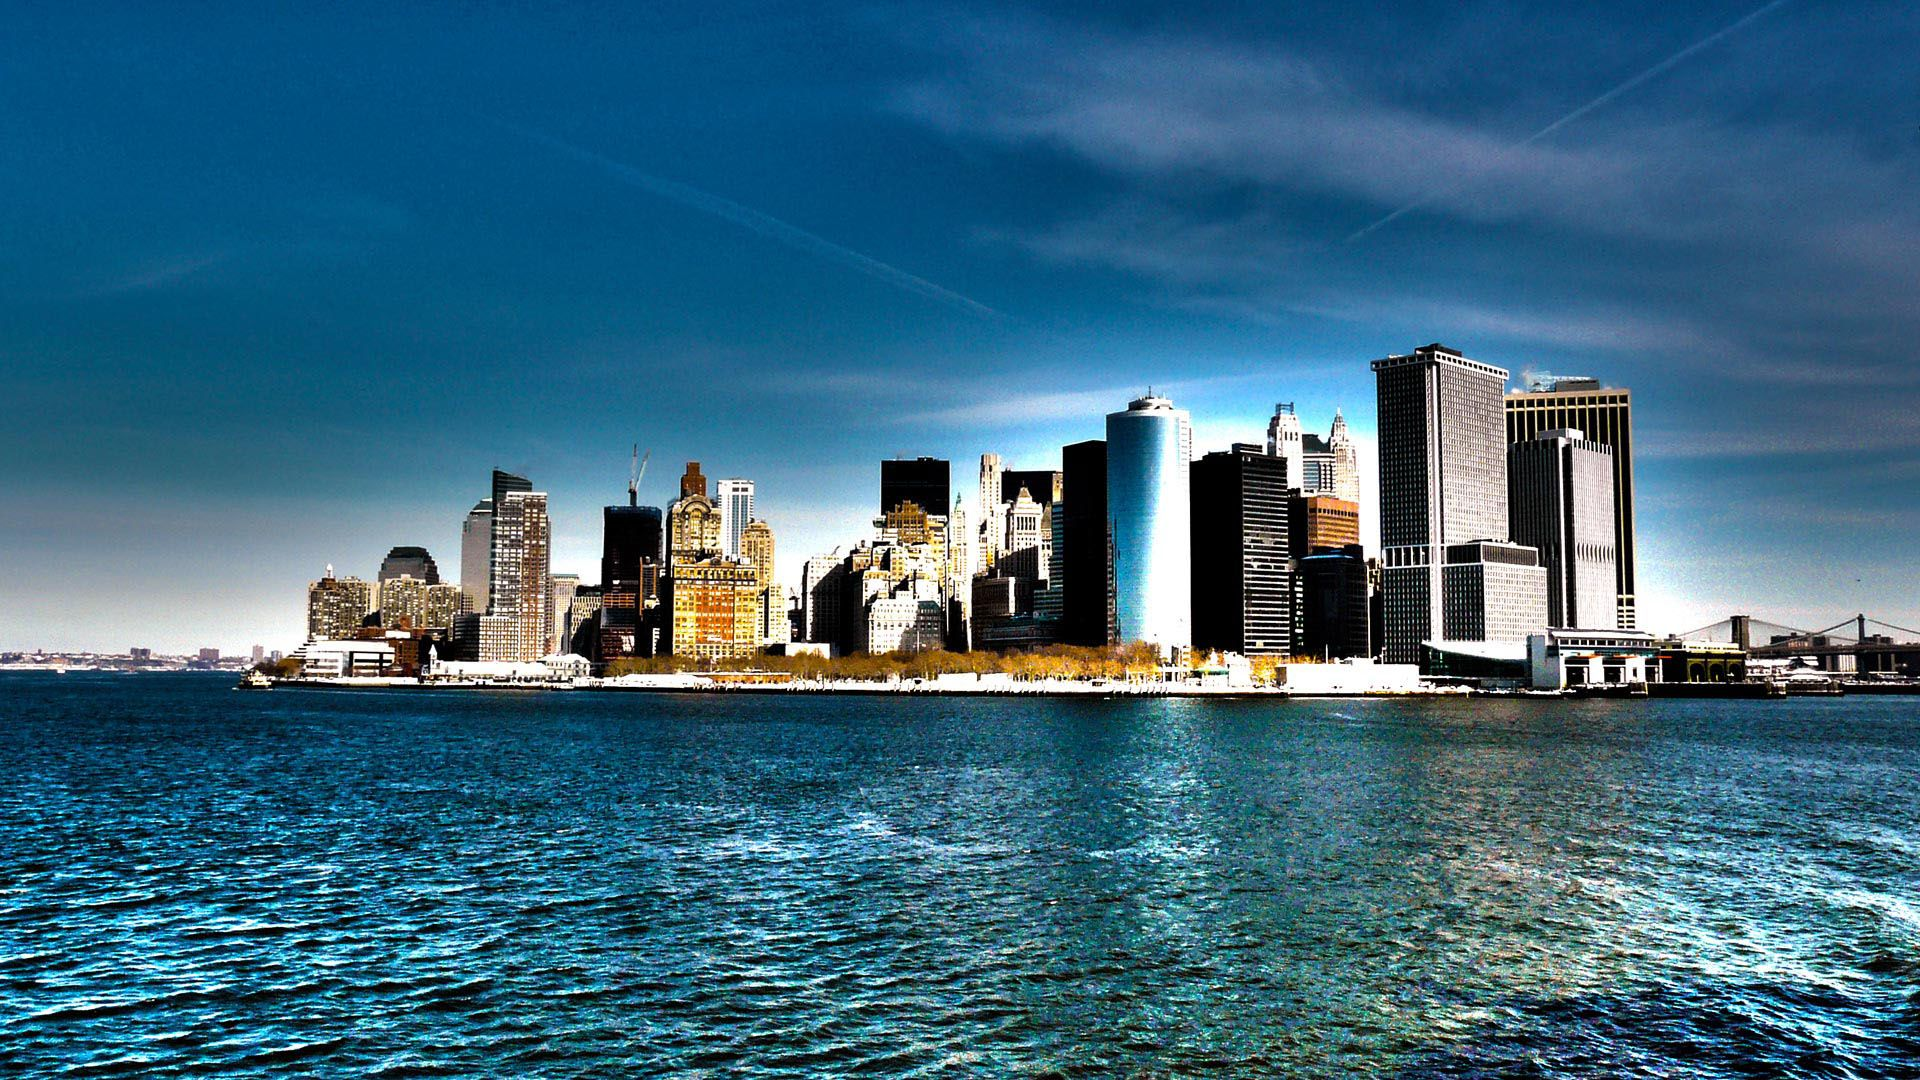 Pin By Stephanie On Hot In New York City City Skyline New York Skyline Skyline